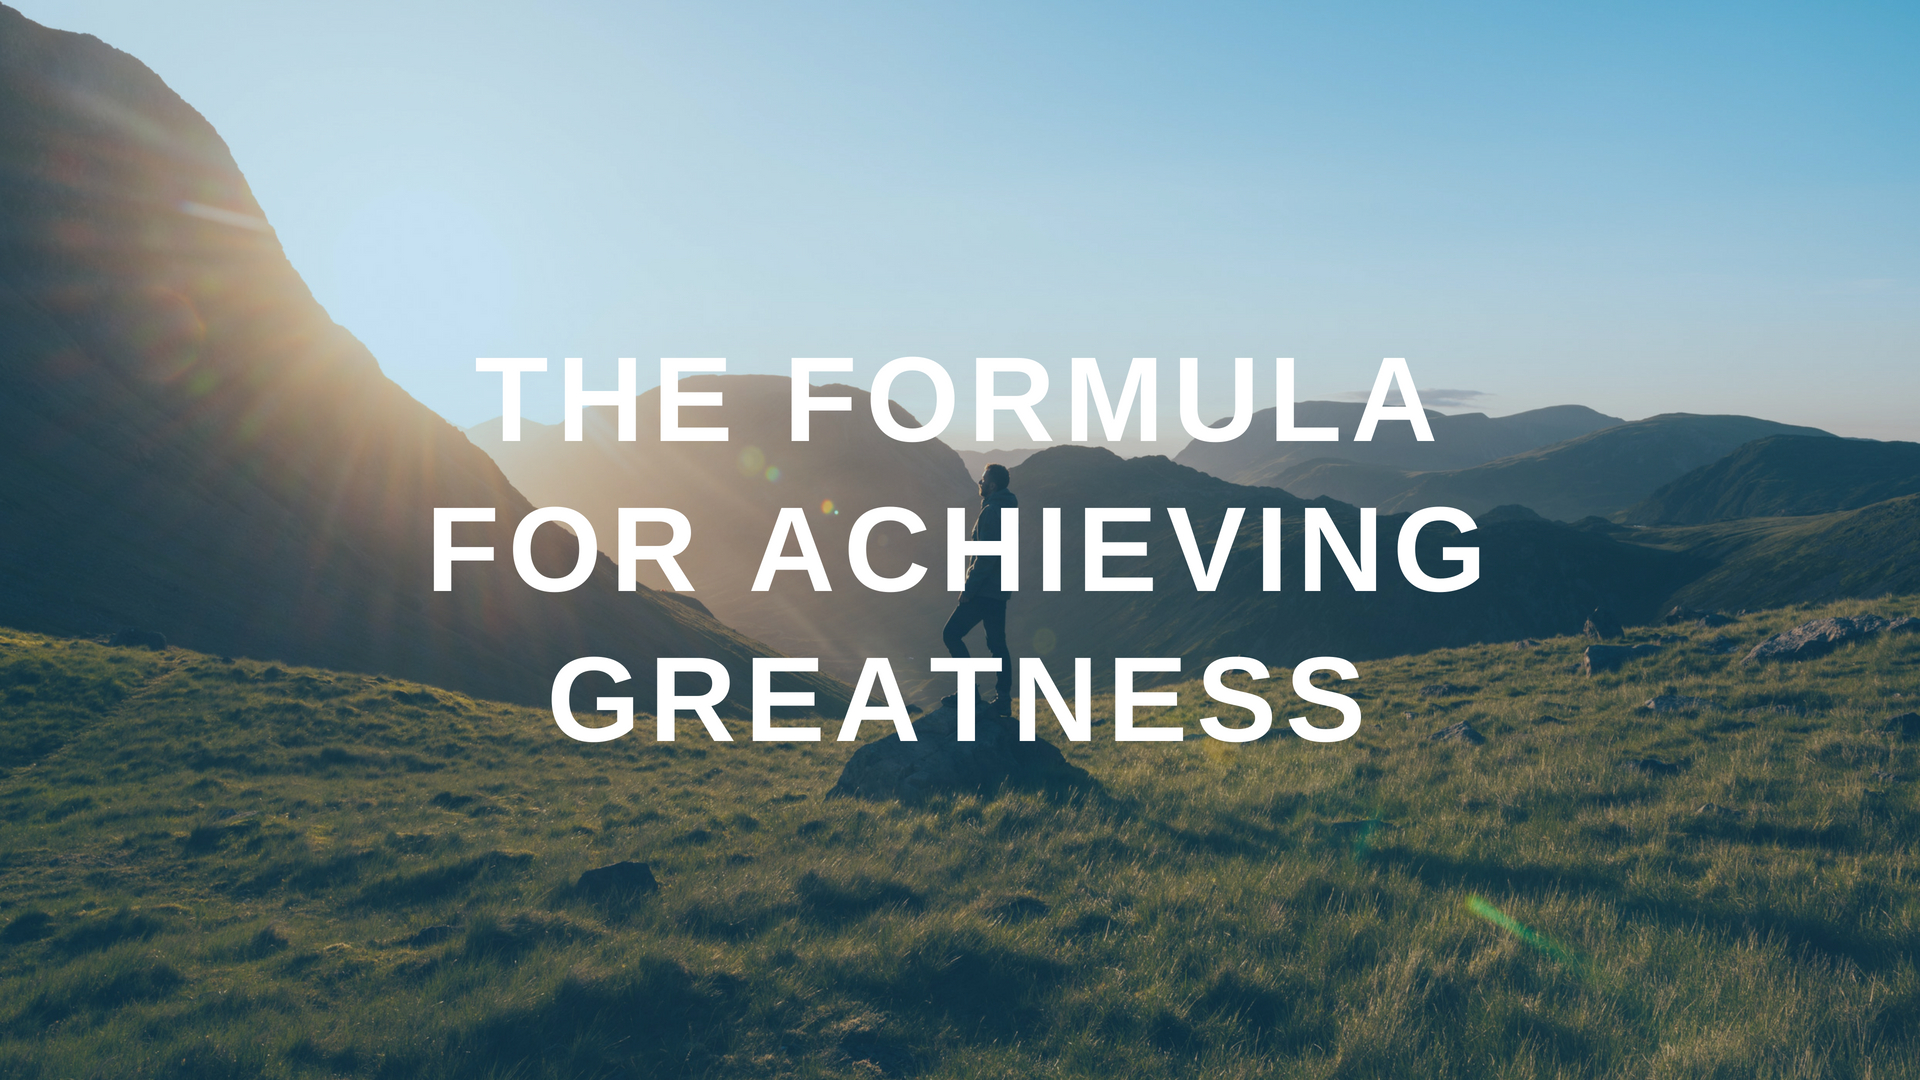 The Formula for Achieving Greatness